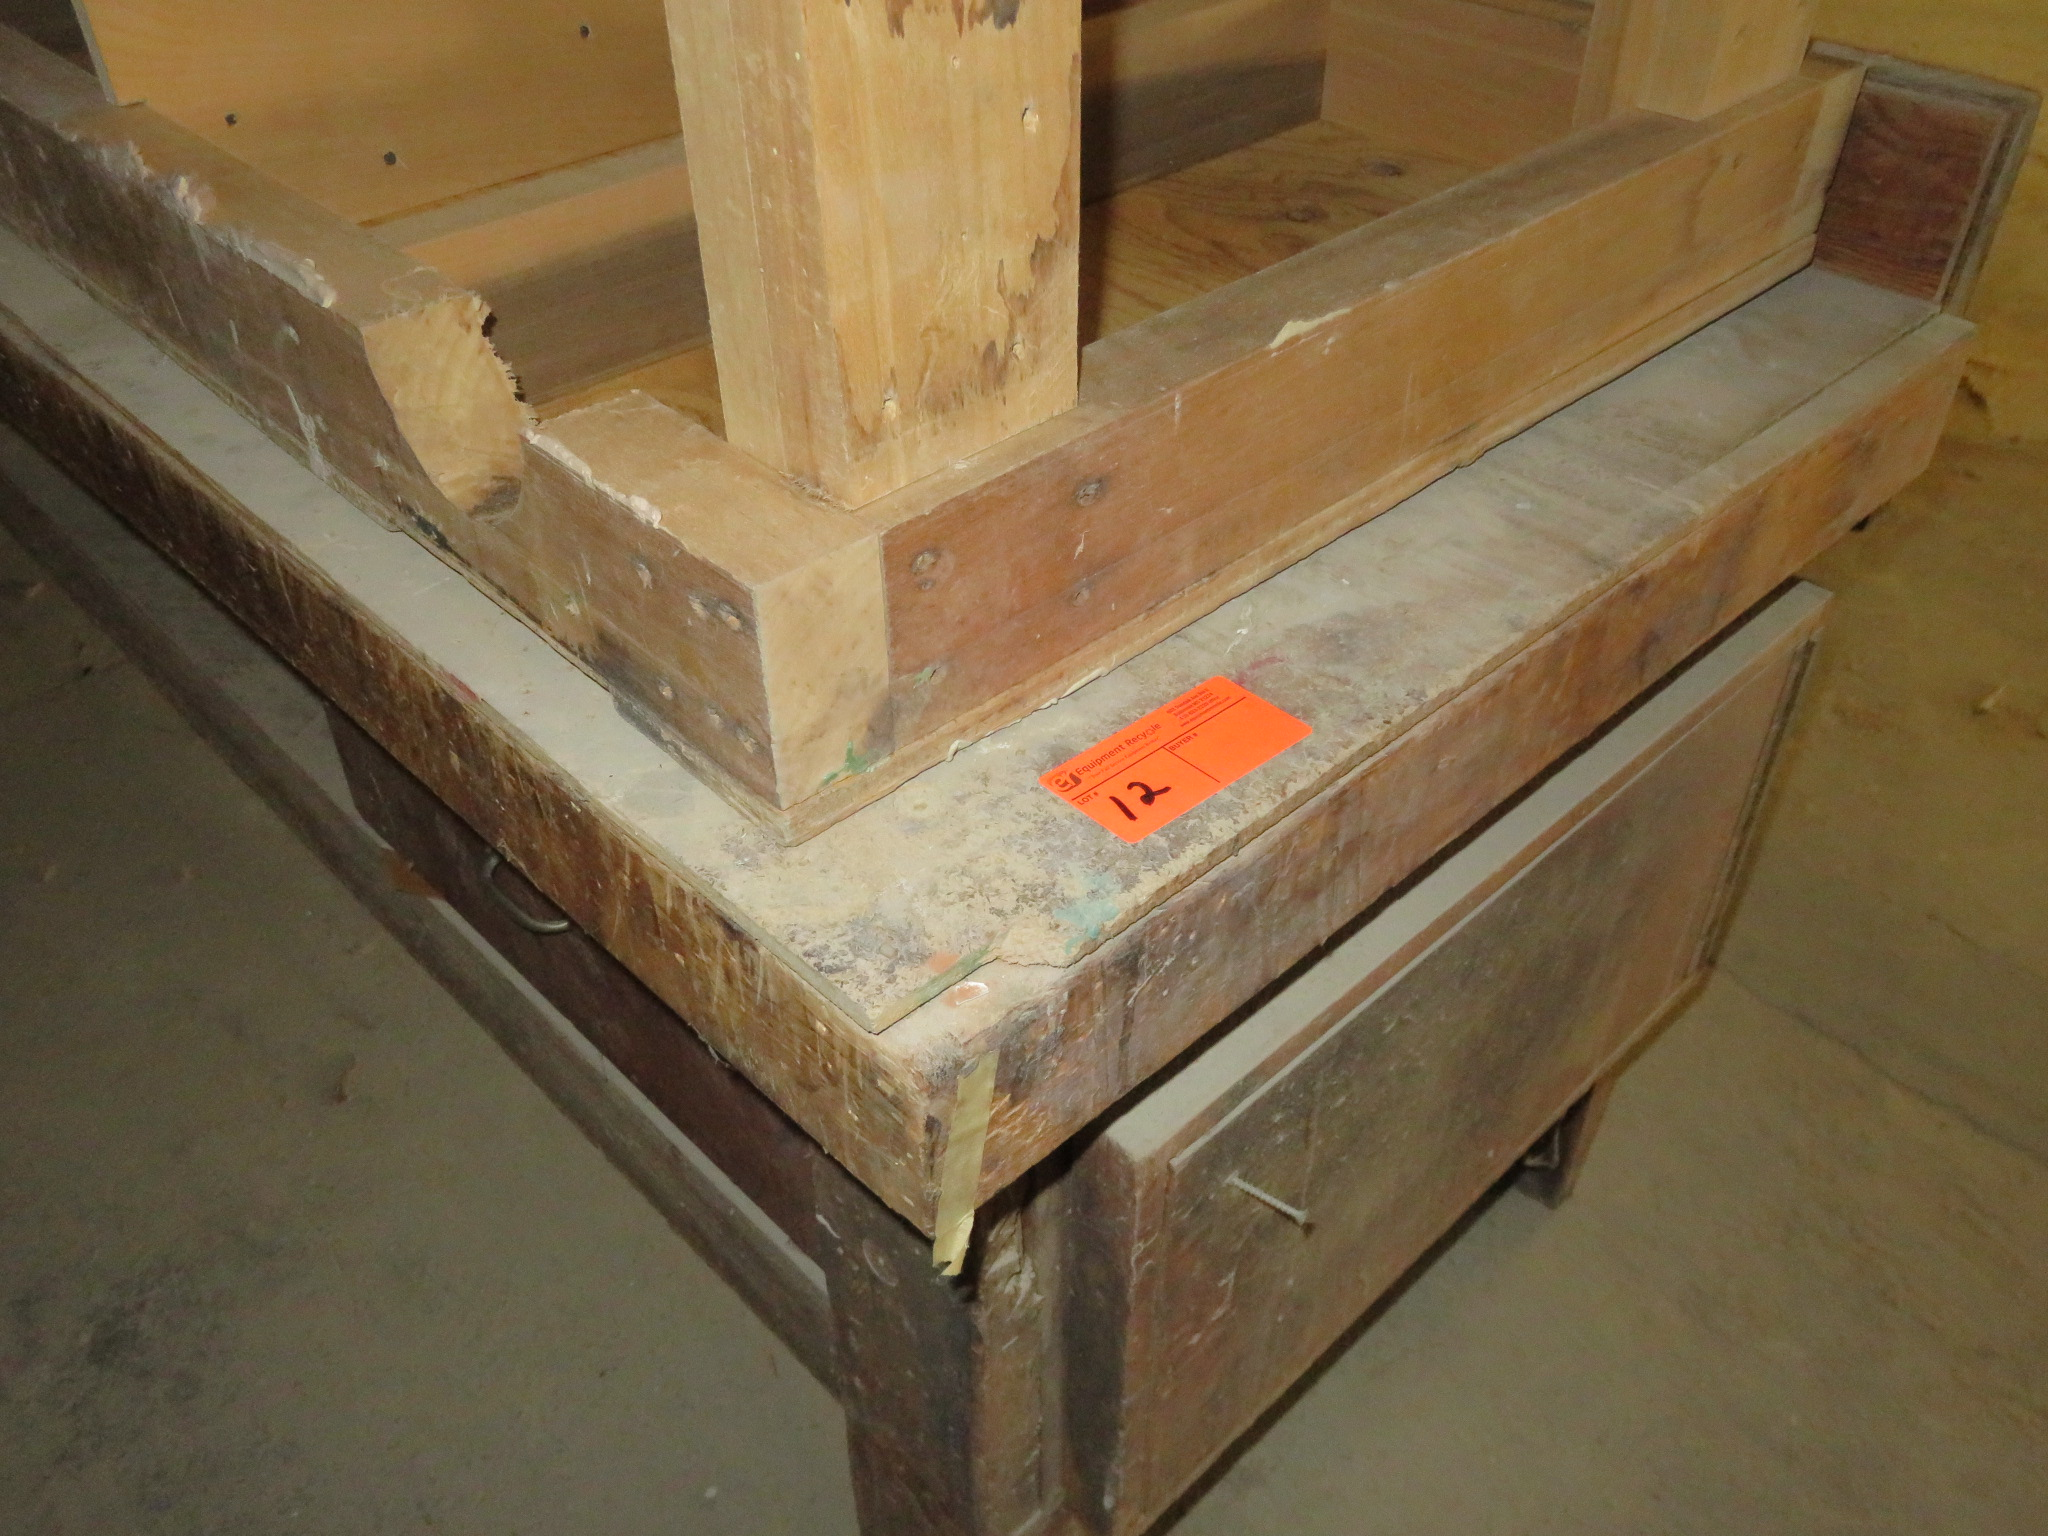 """Heavy Duty Wooden Work Tables Lot of 2 approx 96""""x 35""""x 34"""" & 72""""x 30""""x 35"""" - Image 2 of 2"""